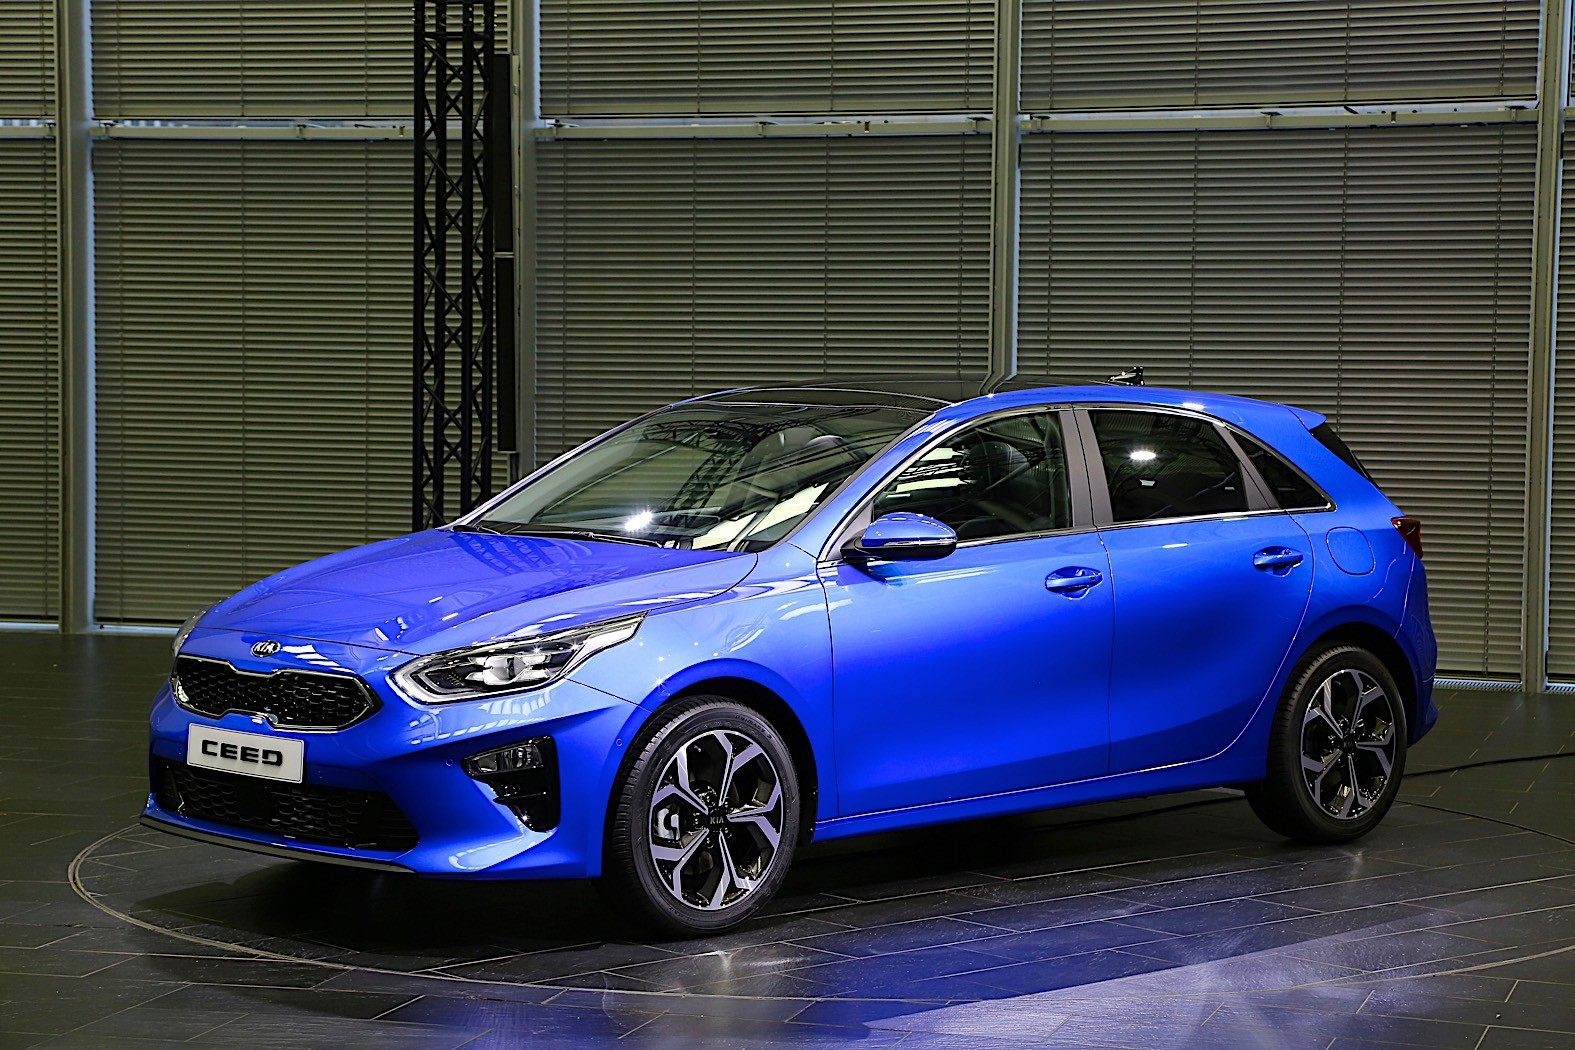 All-new 2018 Kia Ceed officially revealed